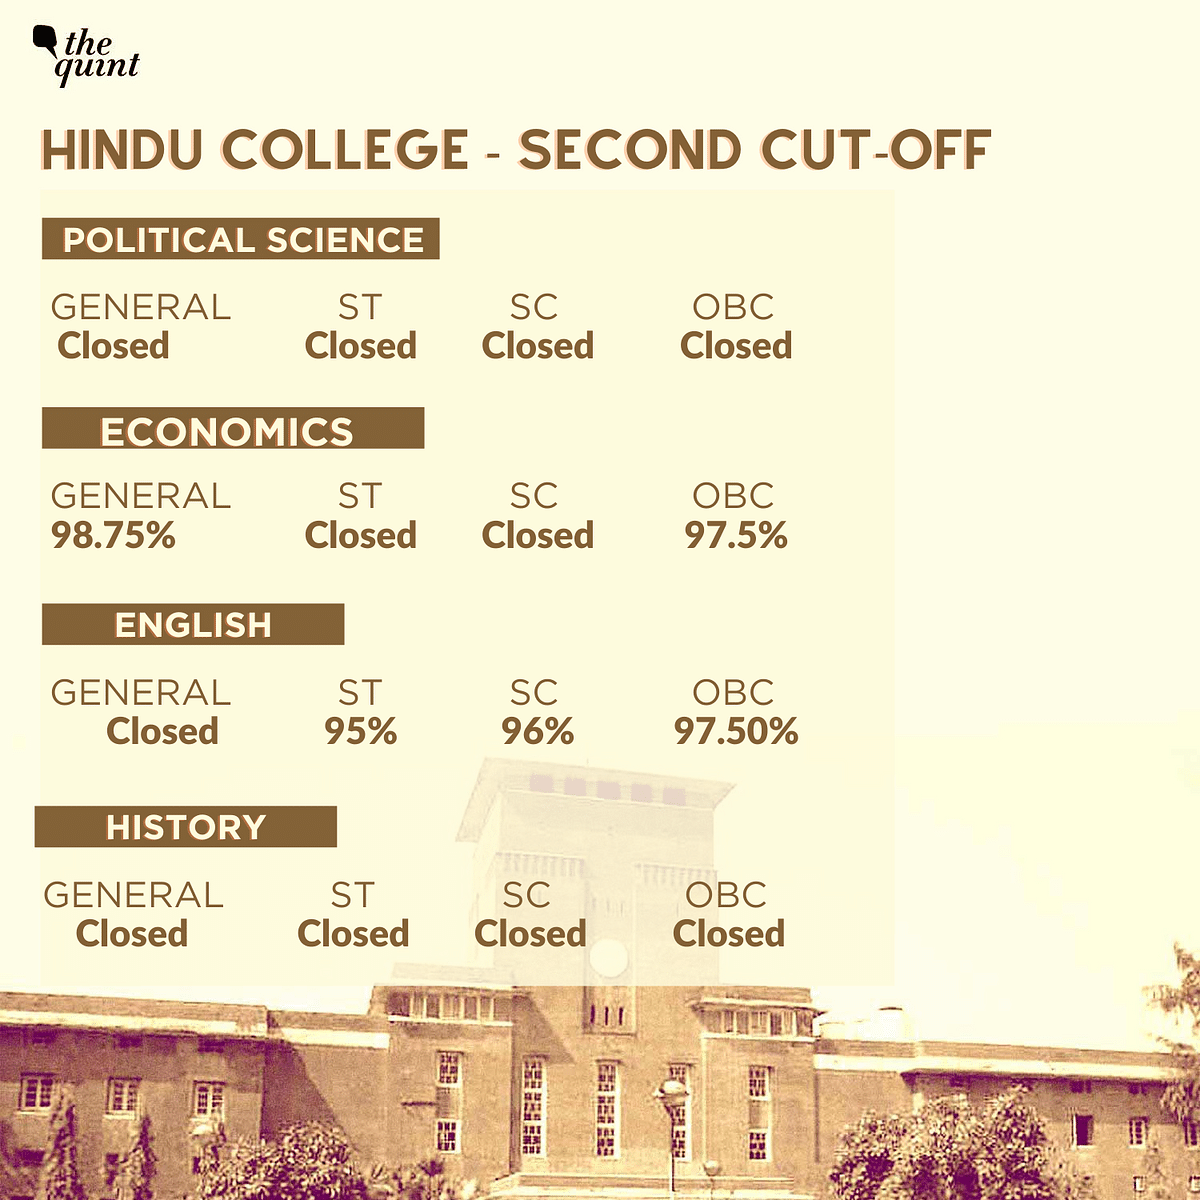 DU's 2nd Cut-Off Sees Marginal Drop, Popular Courses Closed